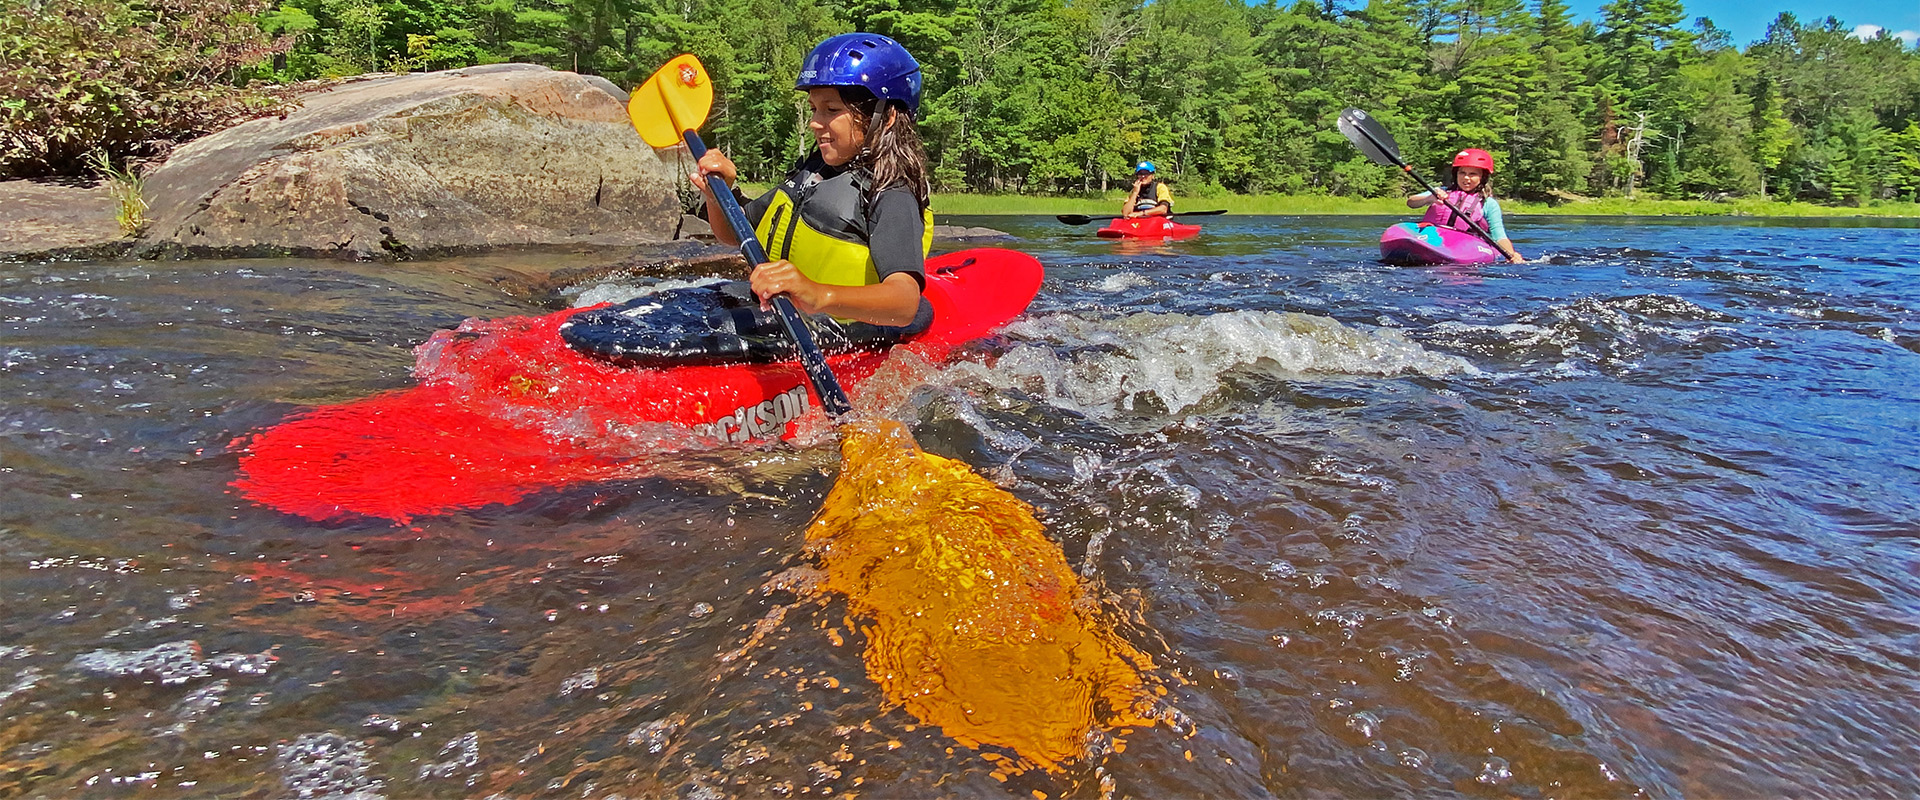 vimff the new generation of whitewater paddlers featured title